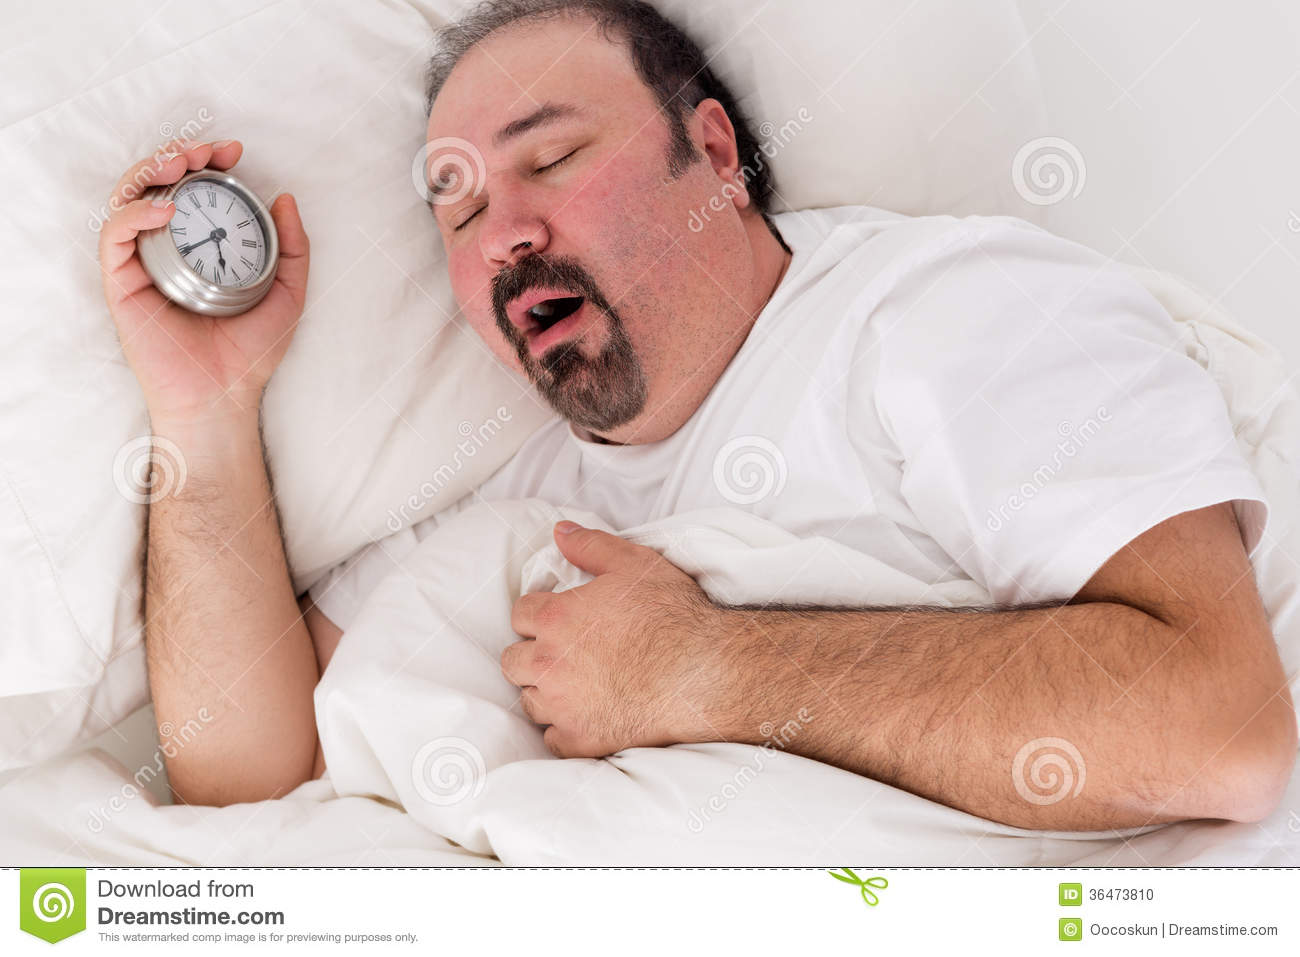 Lethargic man yawning as he struggles to wake up